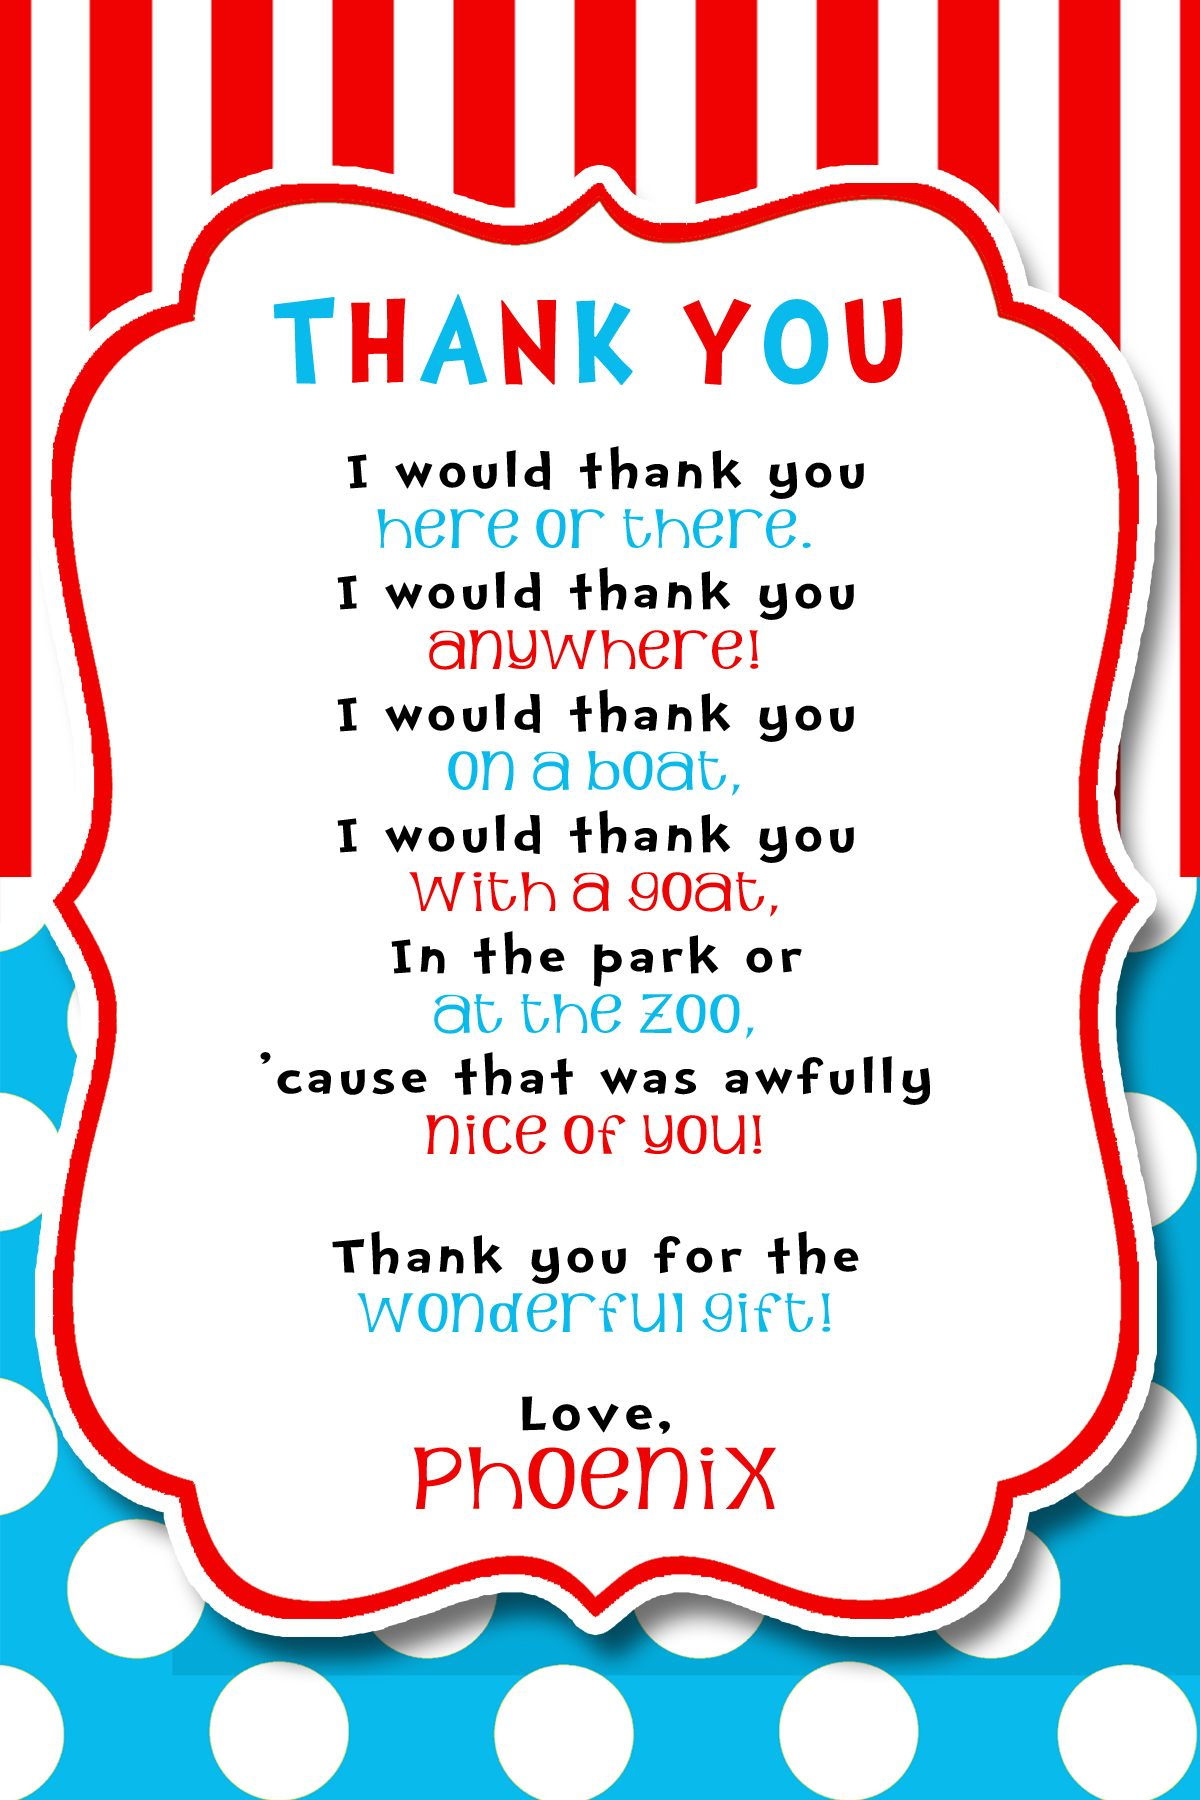 Volunteer Thank You Poem 2016